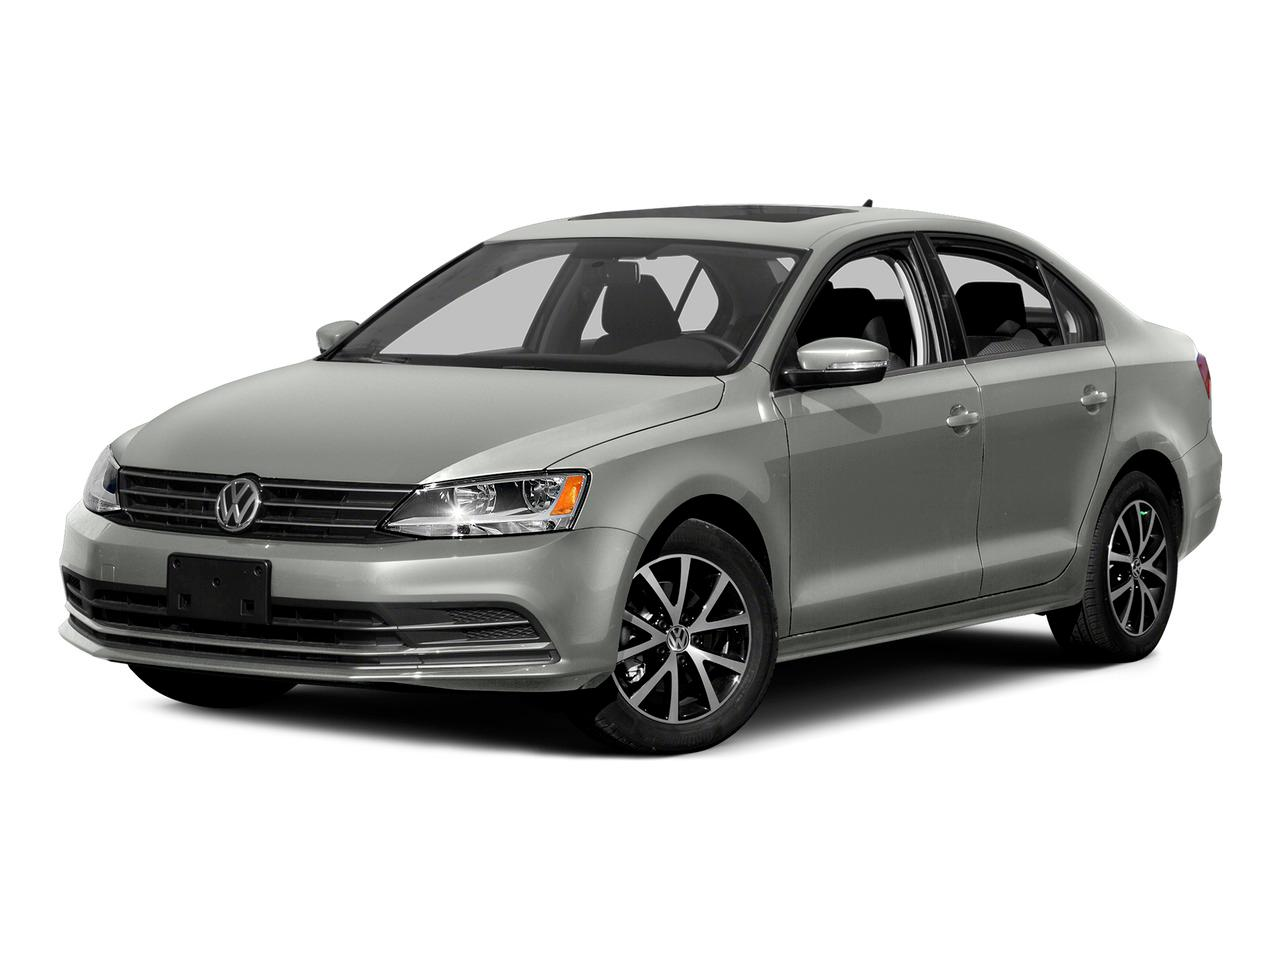 2015 Volkswagen Jetta Sedan Vehicle Photo in San Antonio, TX 78254